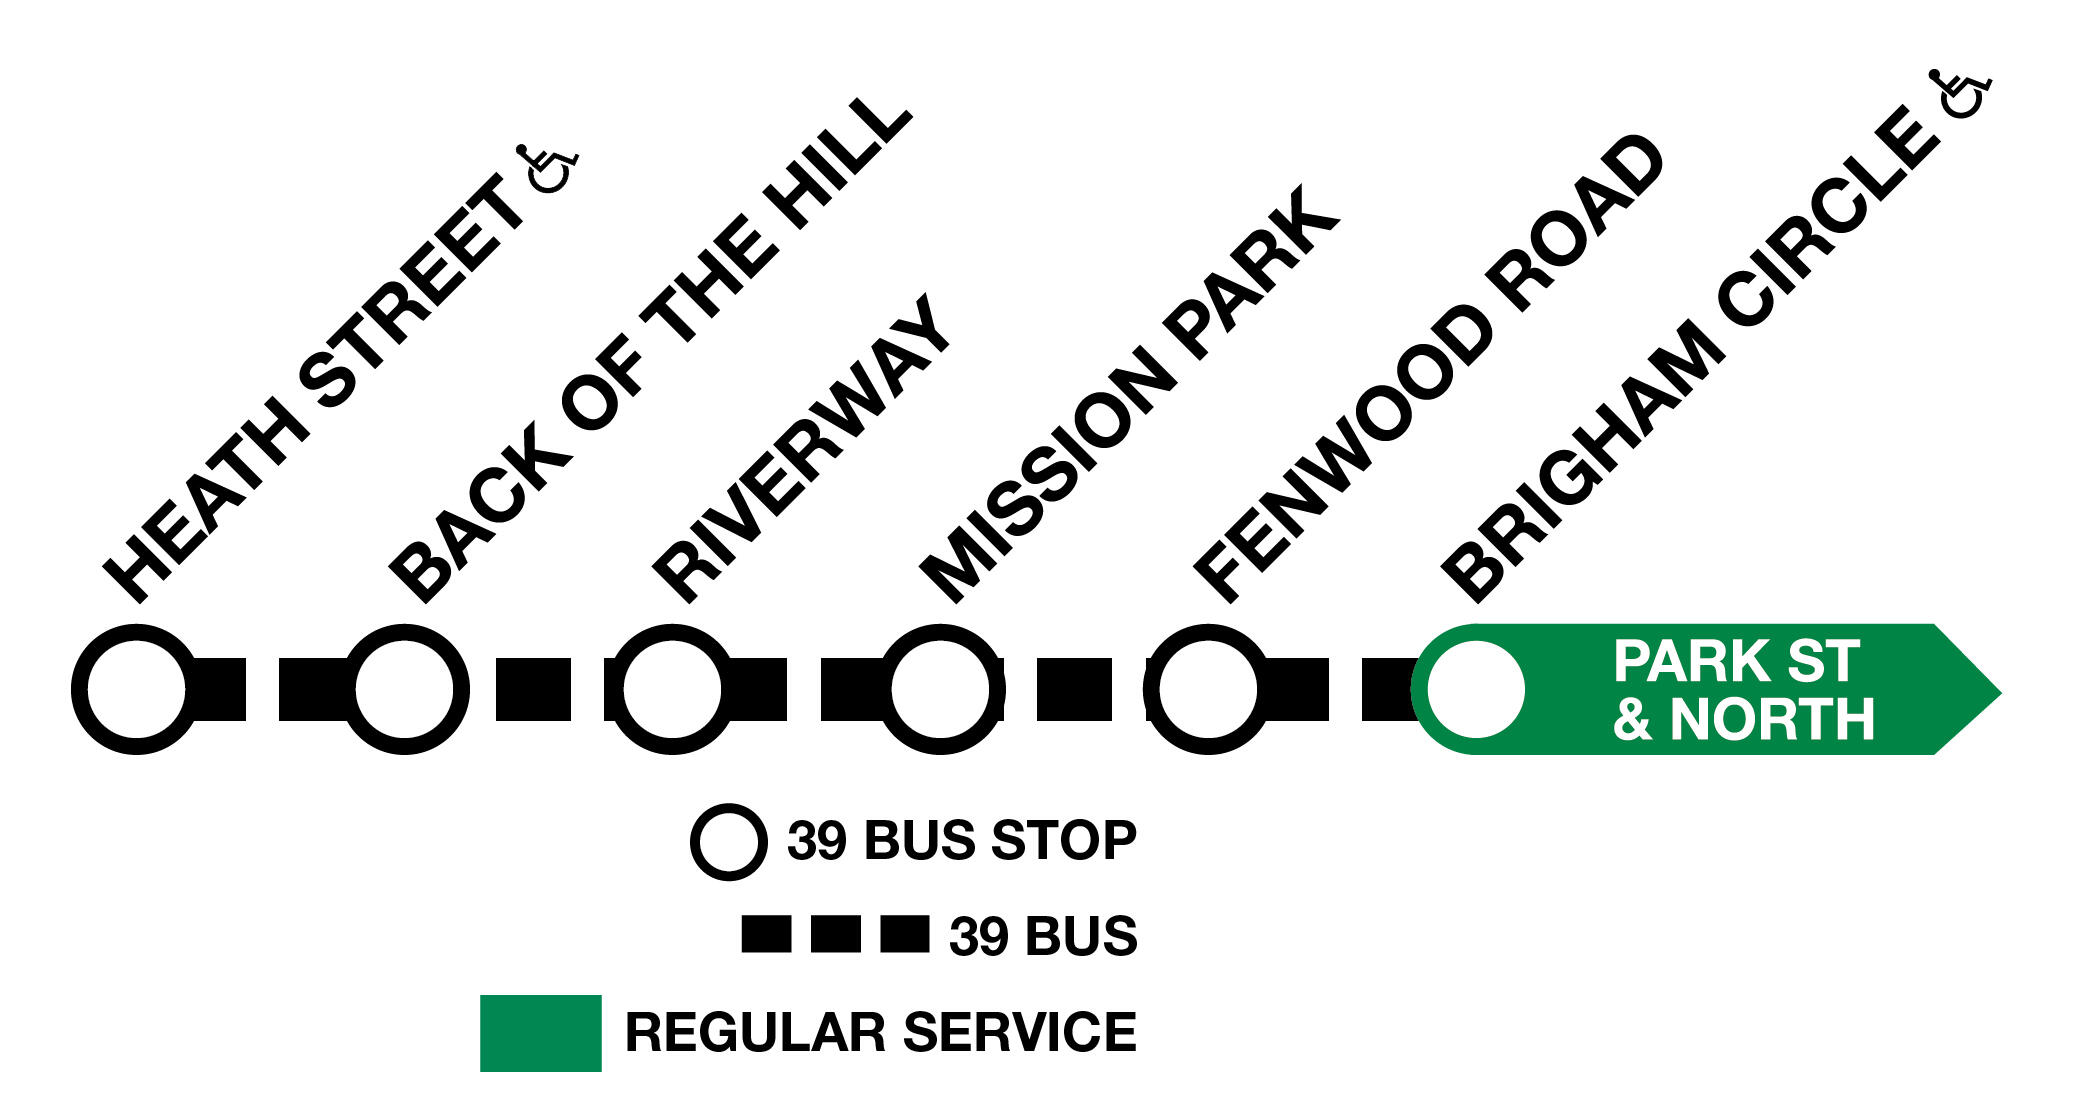 Enhanced Route 39 Service during E Branch Acceleration